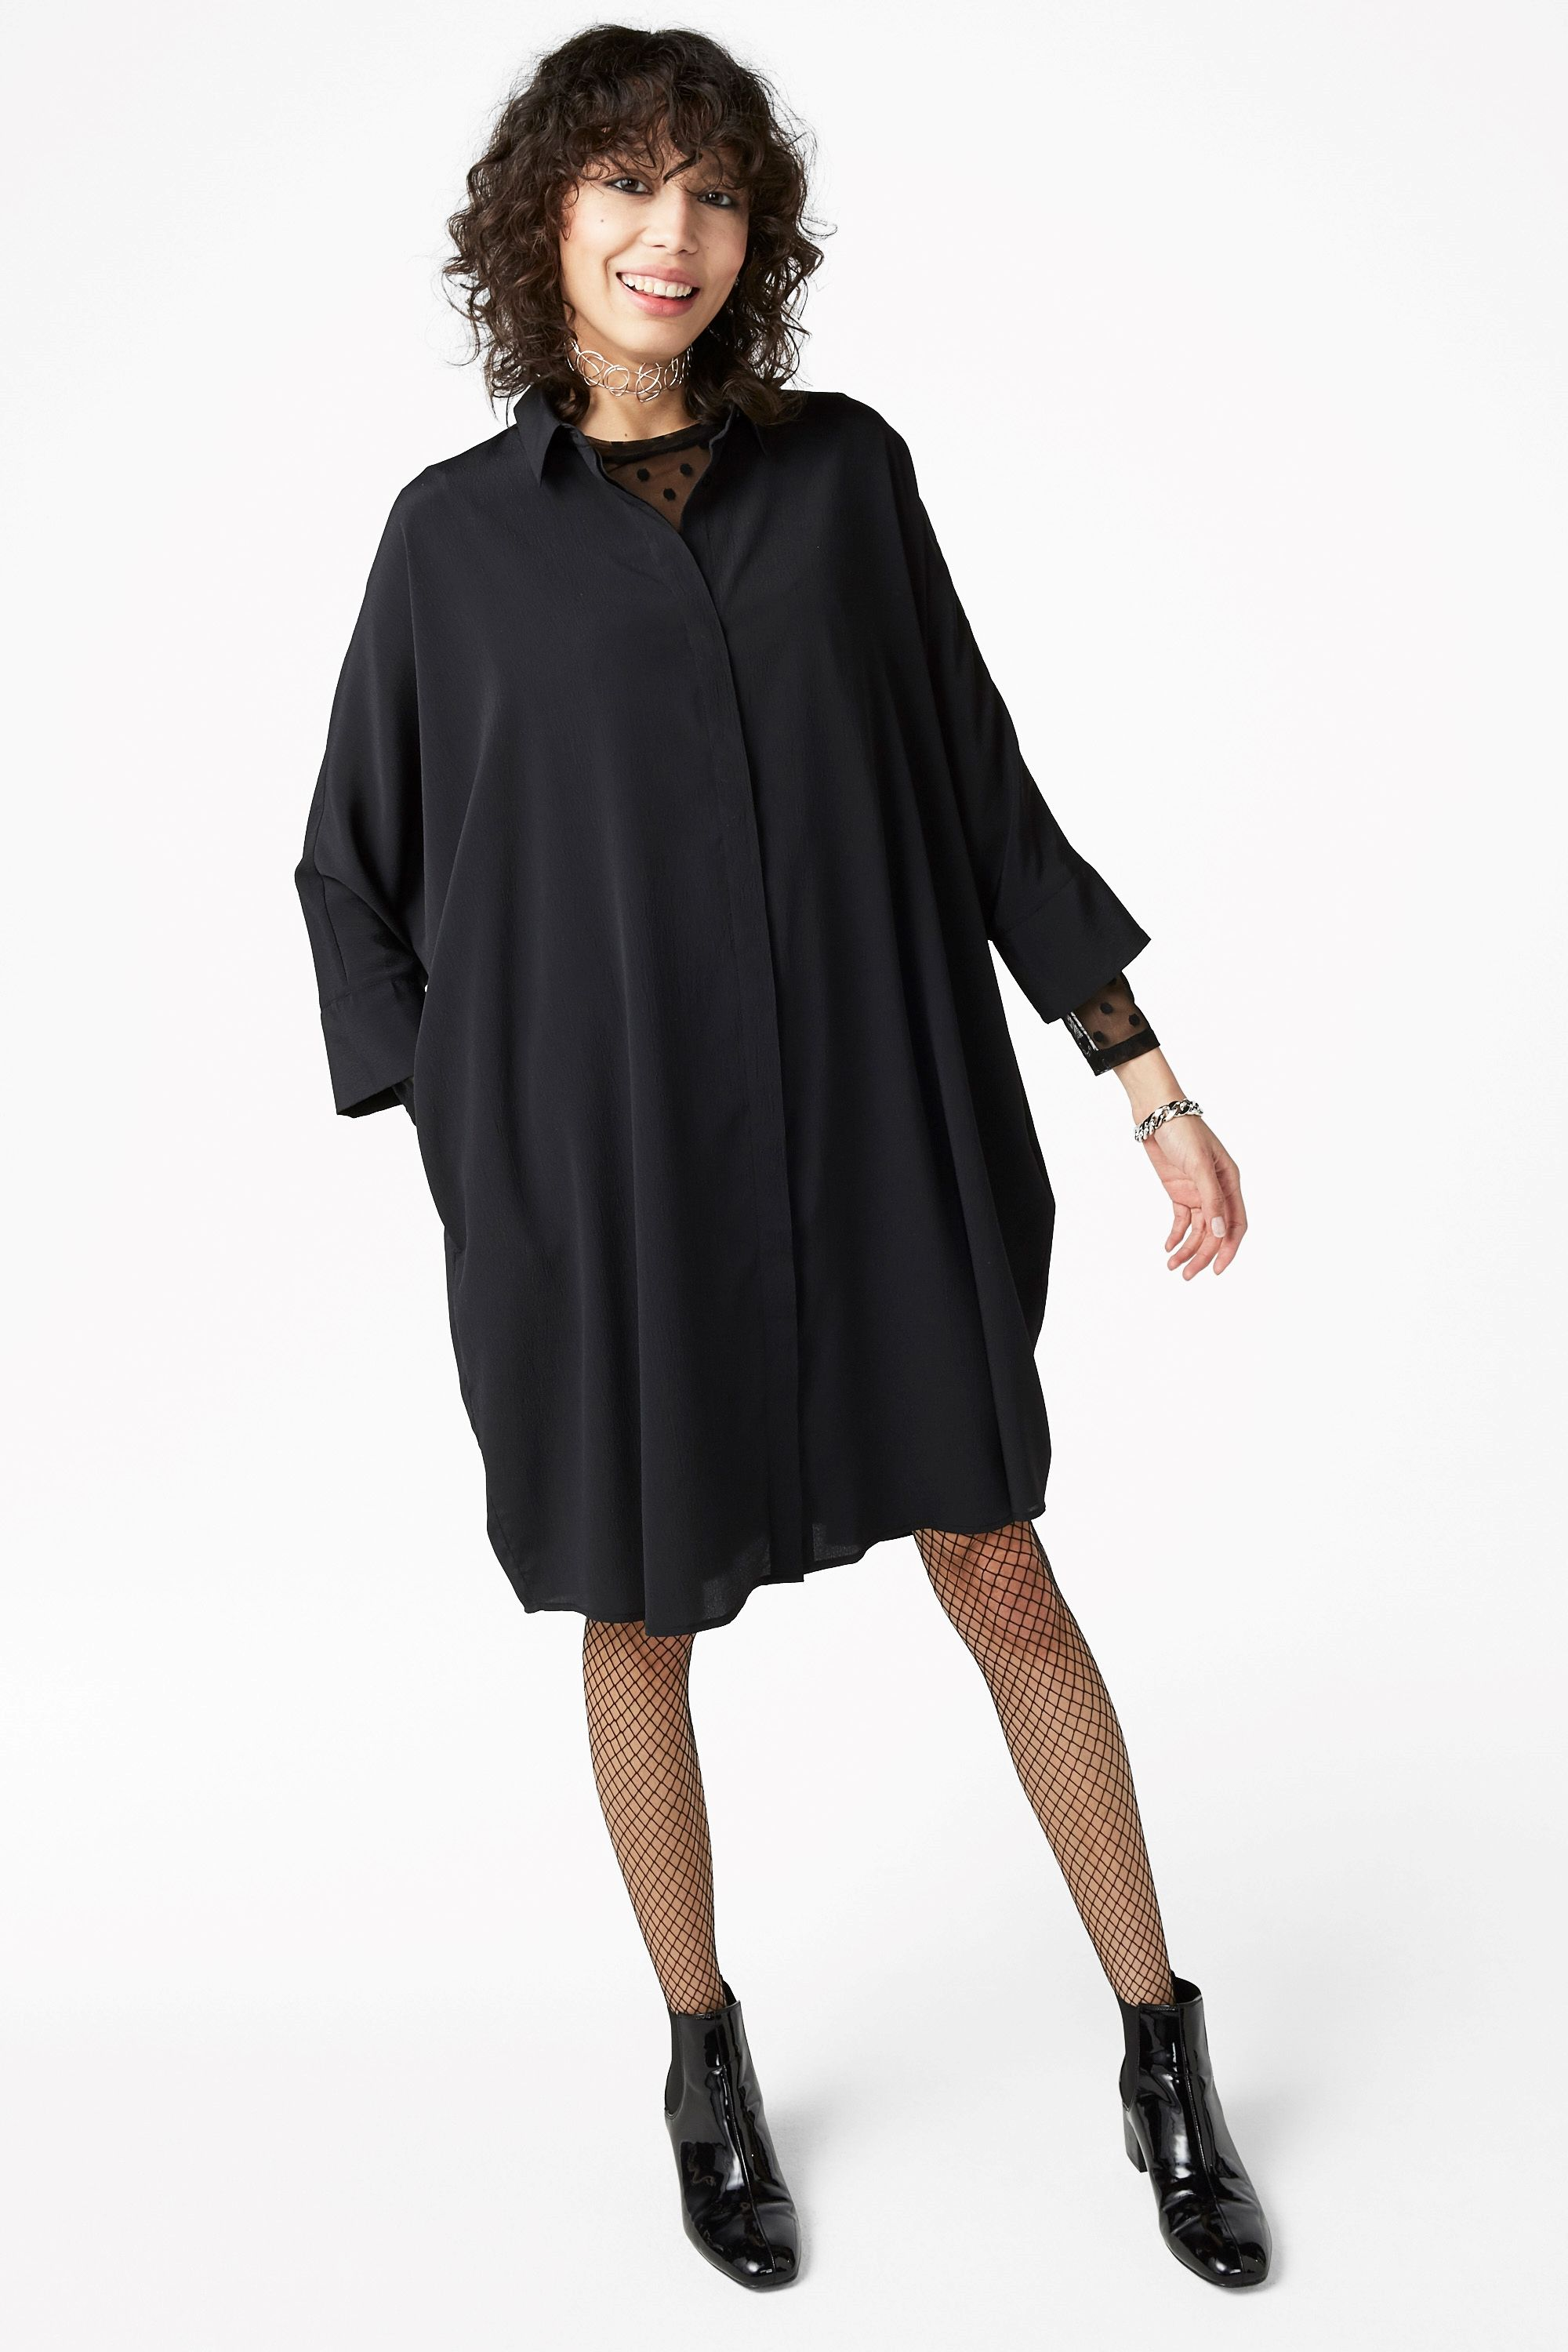 This Shirt Dress Is The Best Seriously Just Look At It Its Flowy